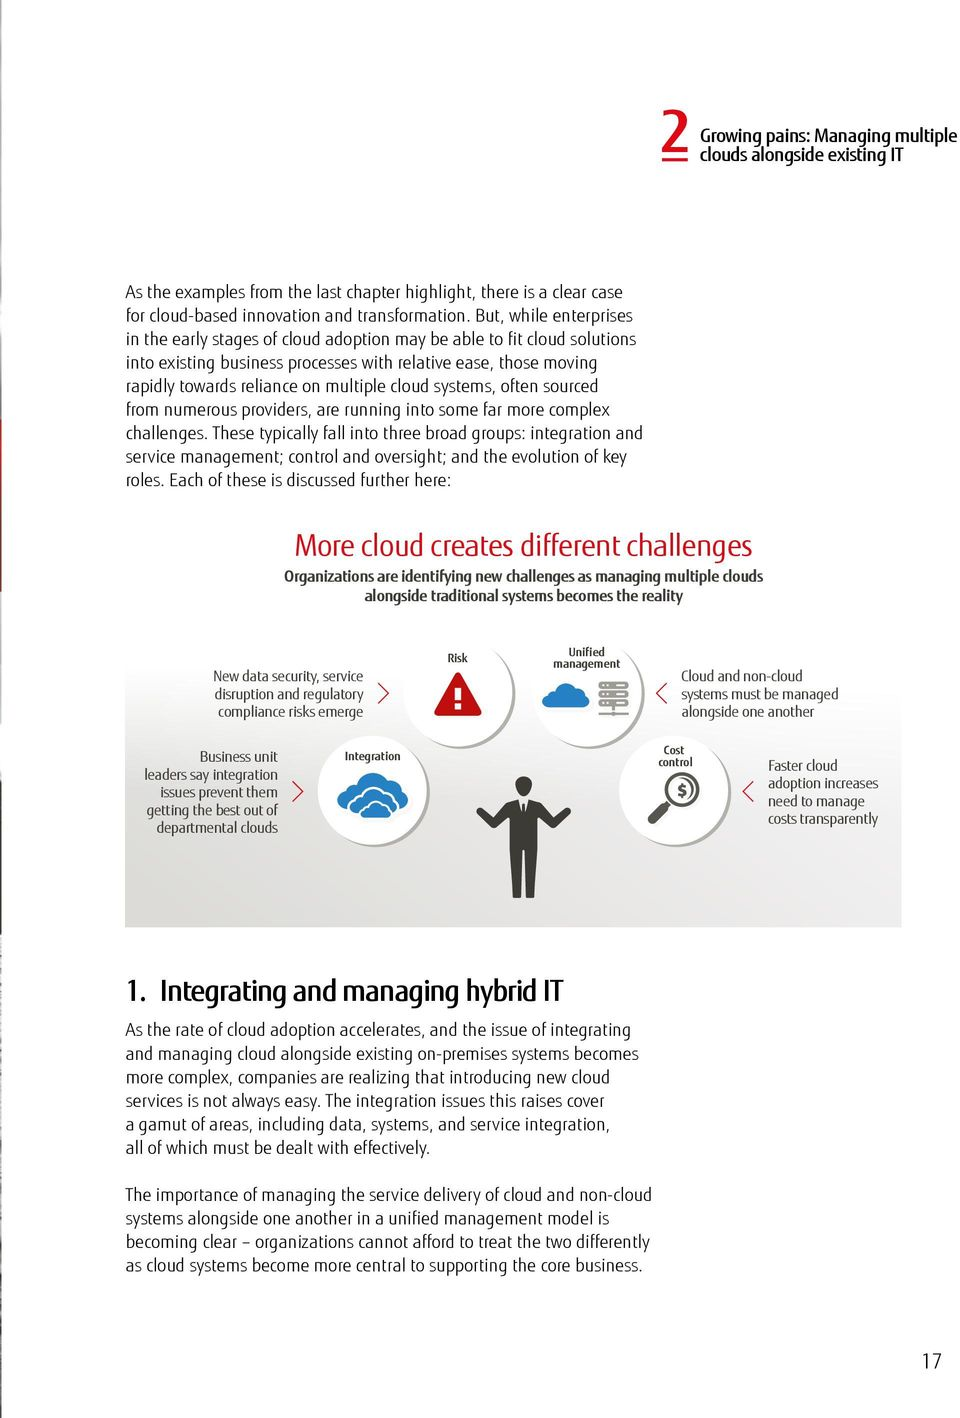 But, while enterprises in the early stages of cloud adoption may be able to fit cloud solutions into existing business processes with relative ease, those moving rapidly towards reliance on multiple